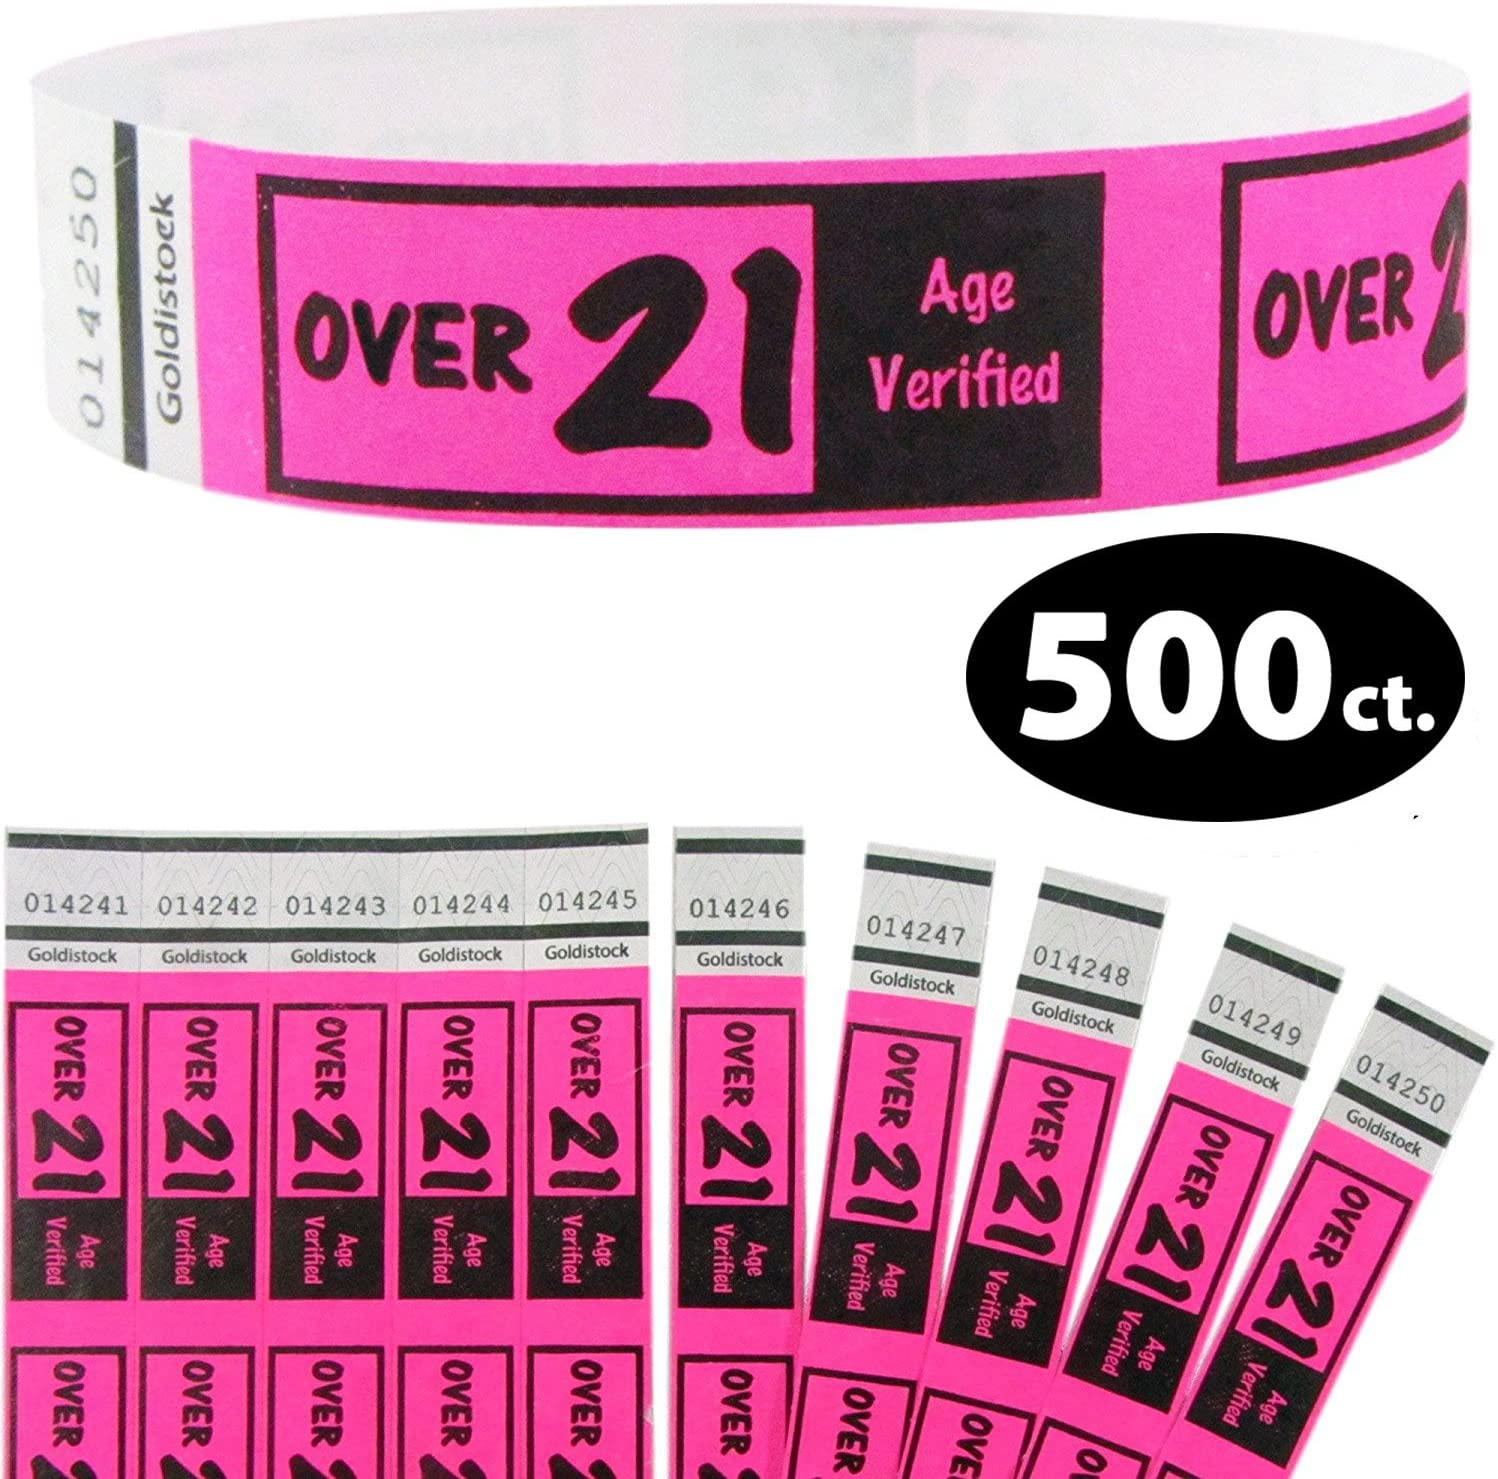 """Heavier Tyvek Wristbands 7.5 Mil - Goldistock Over 21 Neon Pink 500 Ct. – ¾"""" Arm Bands- Extra Durable Tyvek Wrist Bands for Easy Drinking Age Identification"""